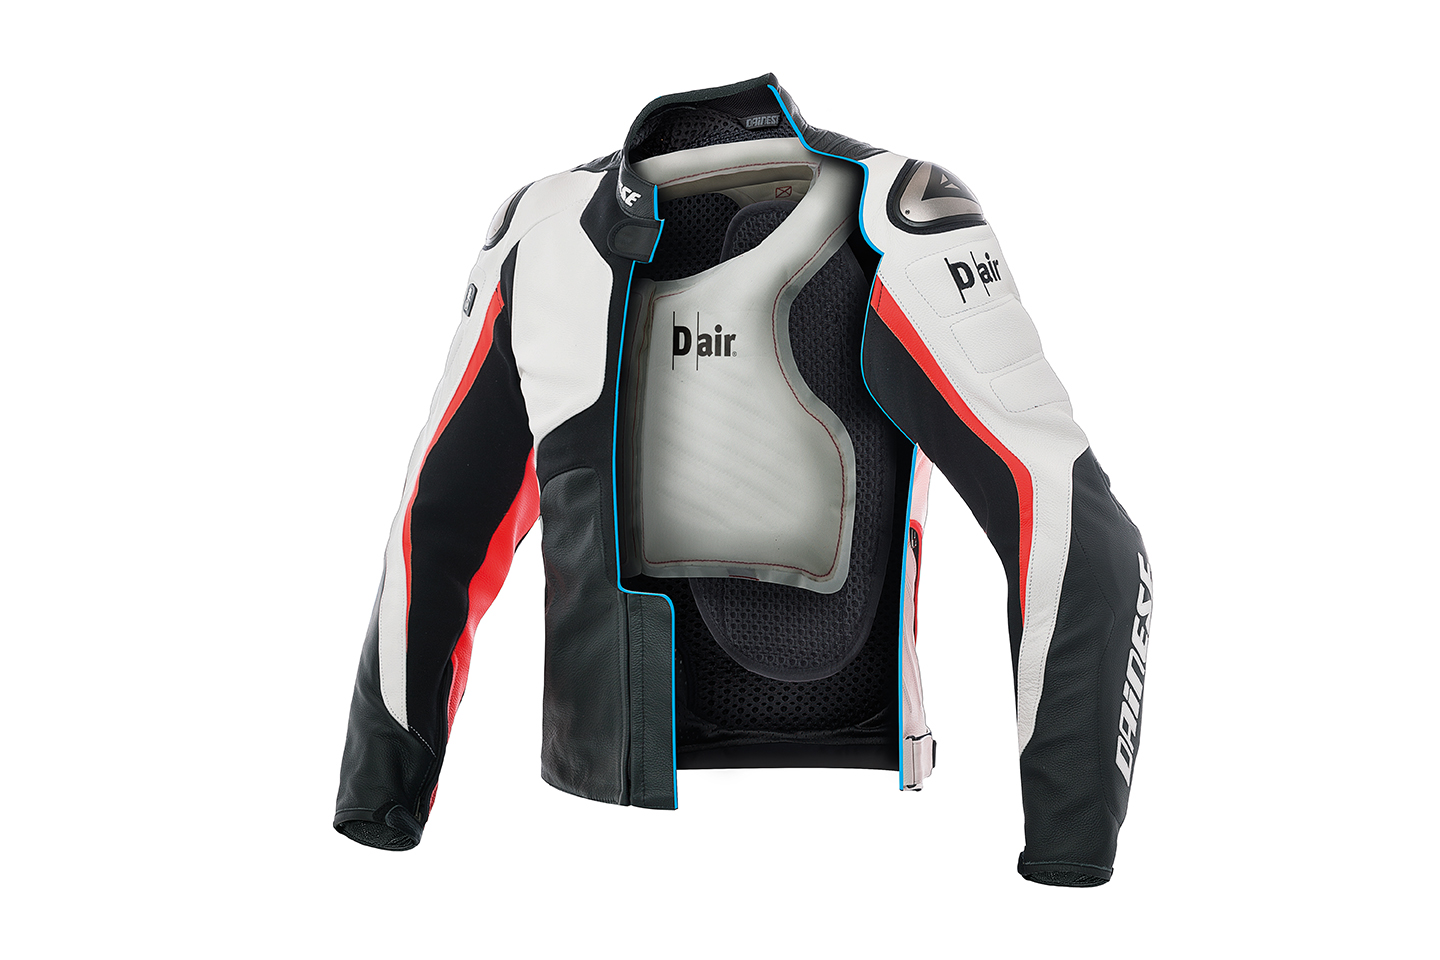 dainese d air misano 1000 jacket visordown. Black Bedroom Furniture Sets. Home Design Ideas